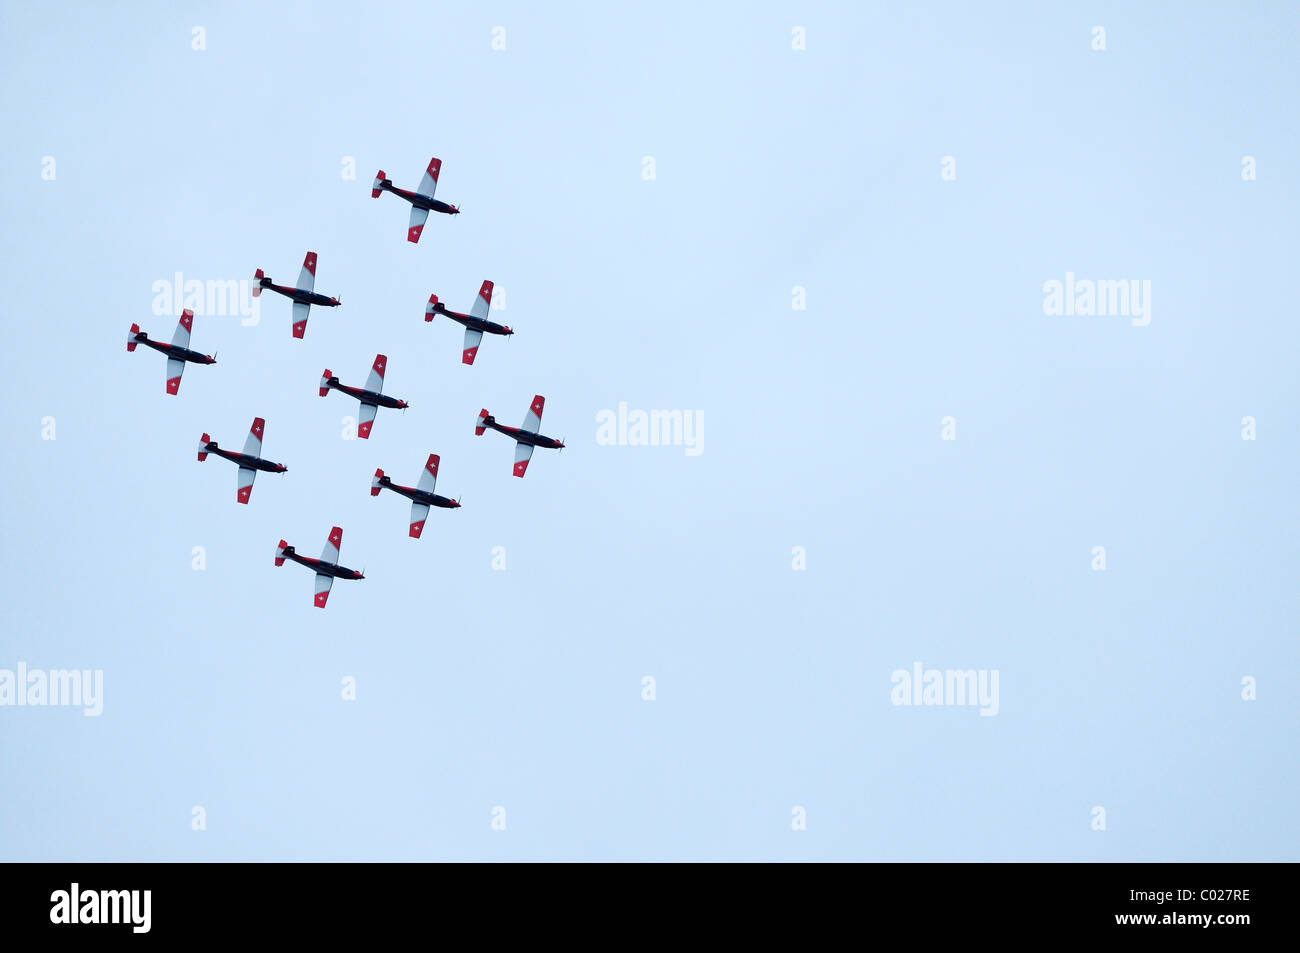 PC-7 team flying in formation, second aerobatic team of the Swiss Air Force, Emmen, Switzerland, Europe - Stock Image